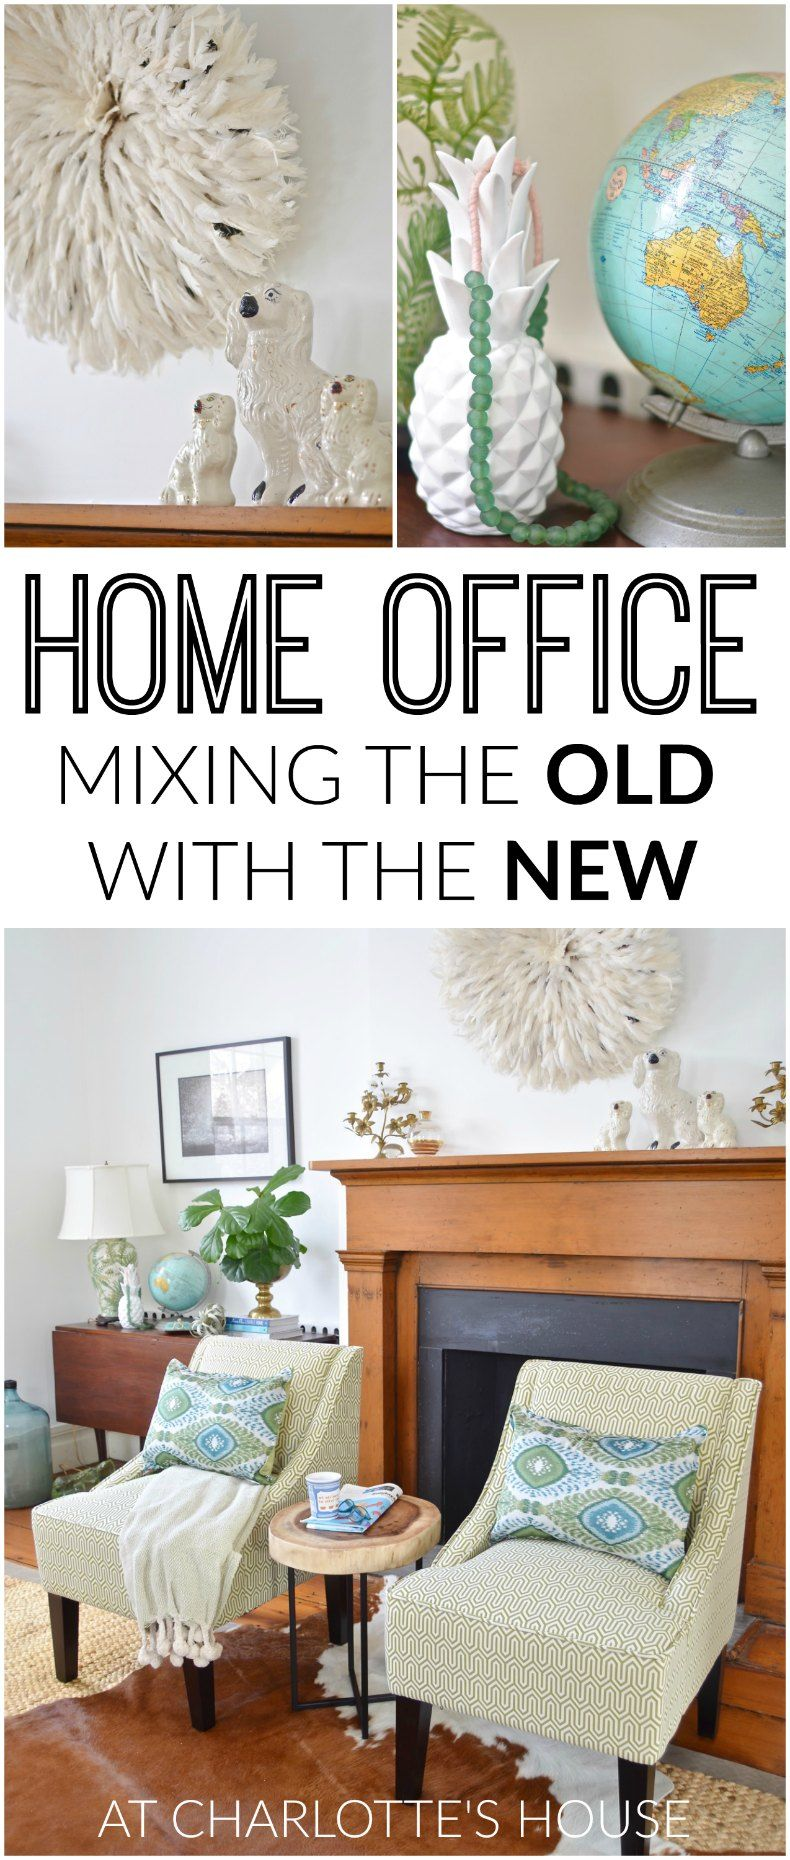 Beautiful Mixing The Old With The New In Our Home Office! #ad #KohlsHome And